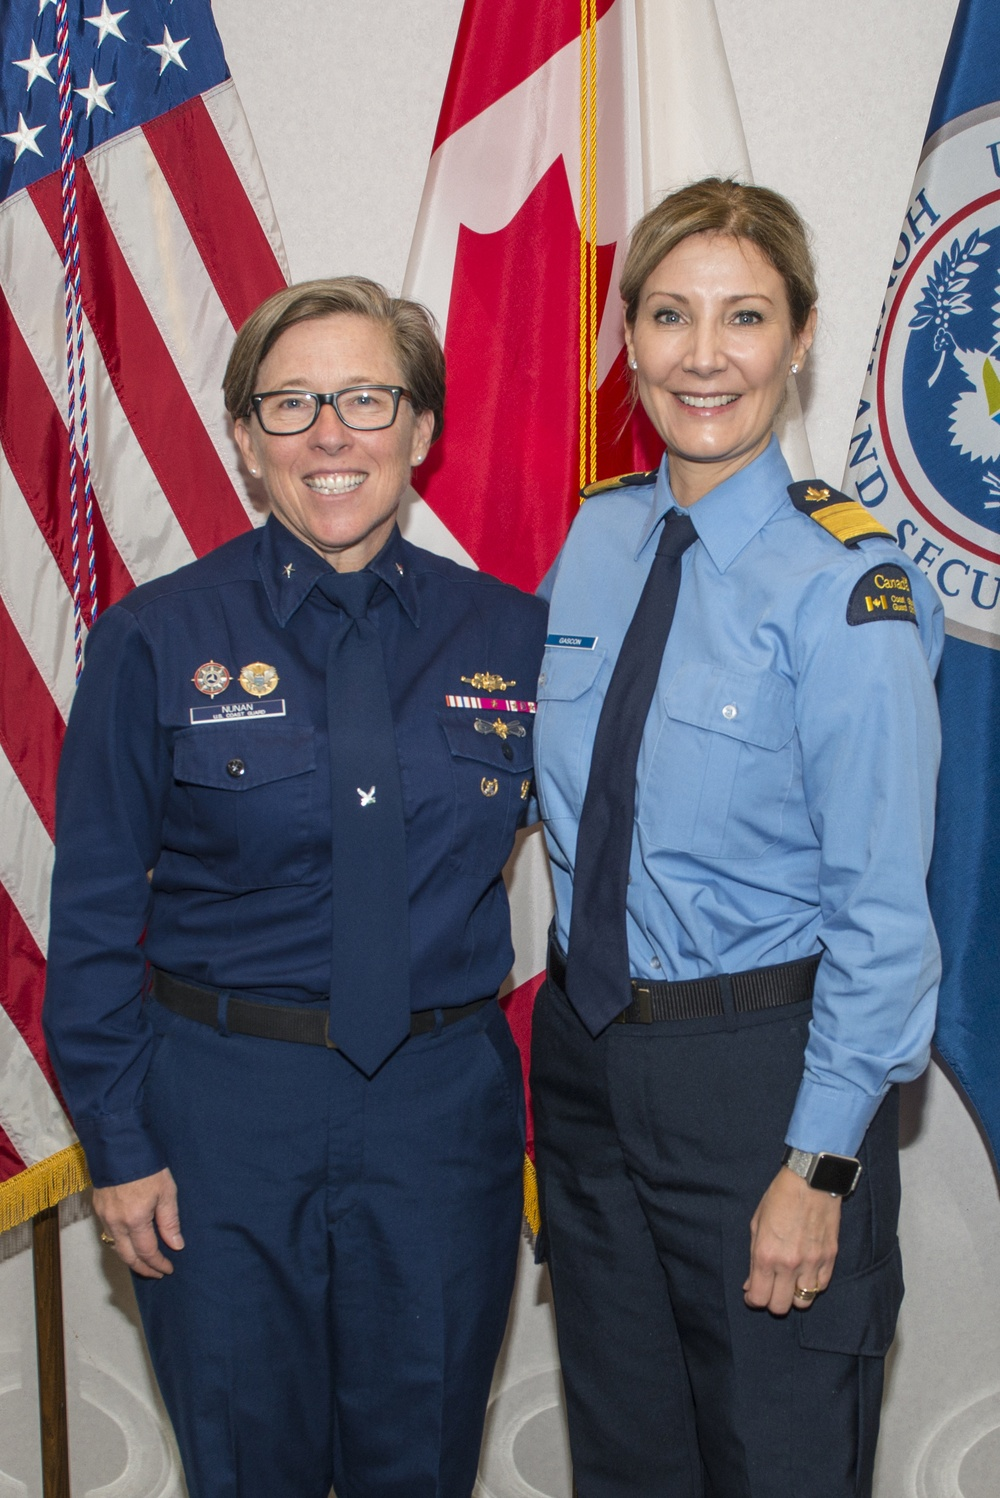 U.S., Canadian Coast Guards meet for annual ice conference in Cleveland